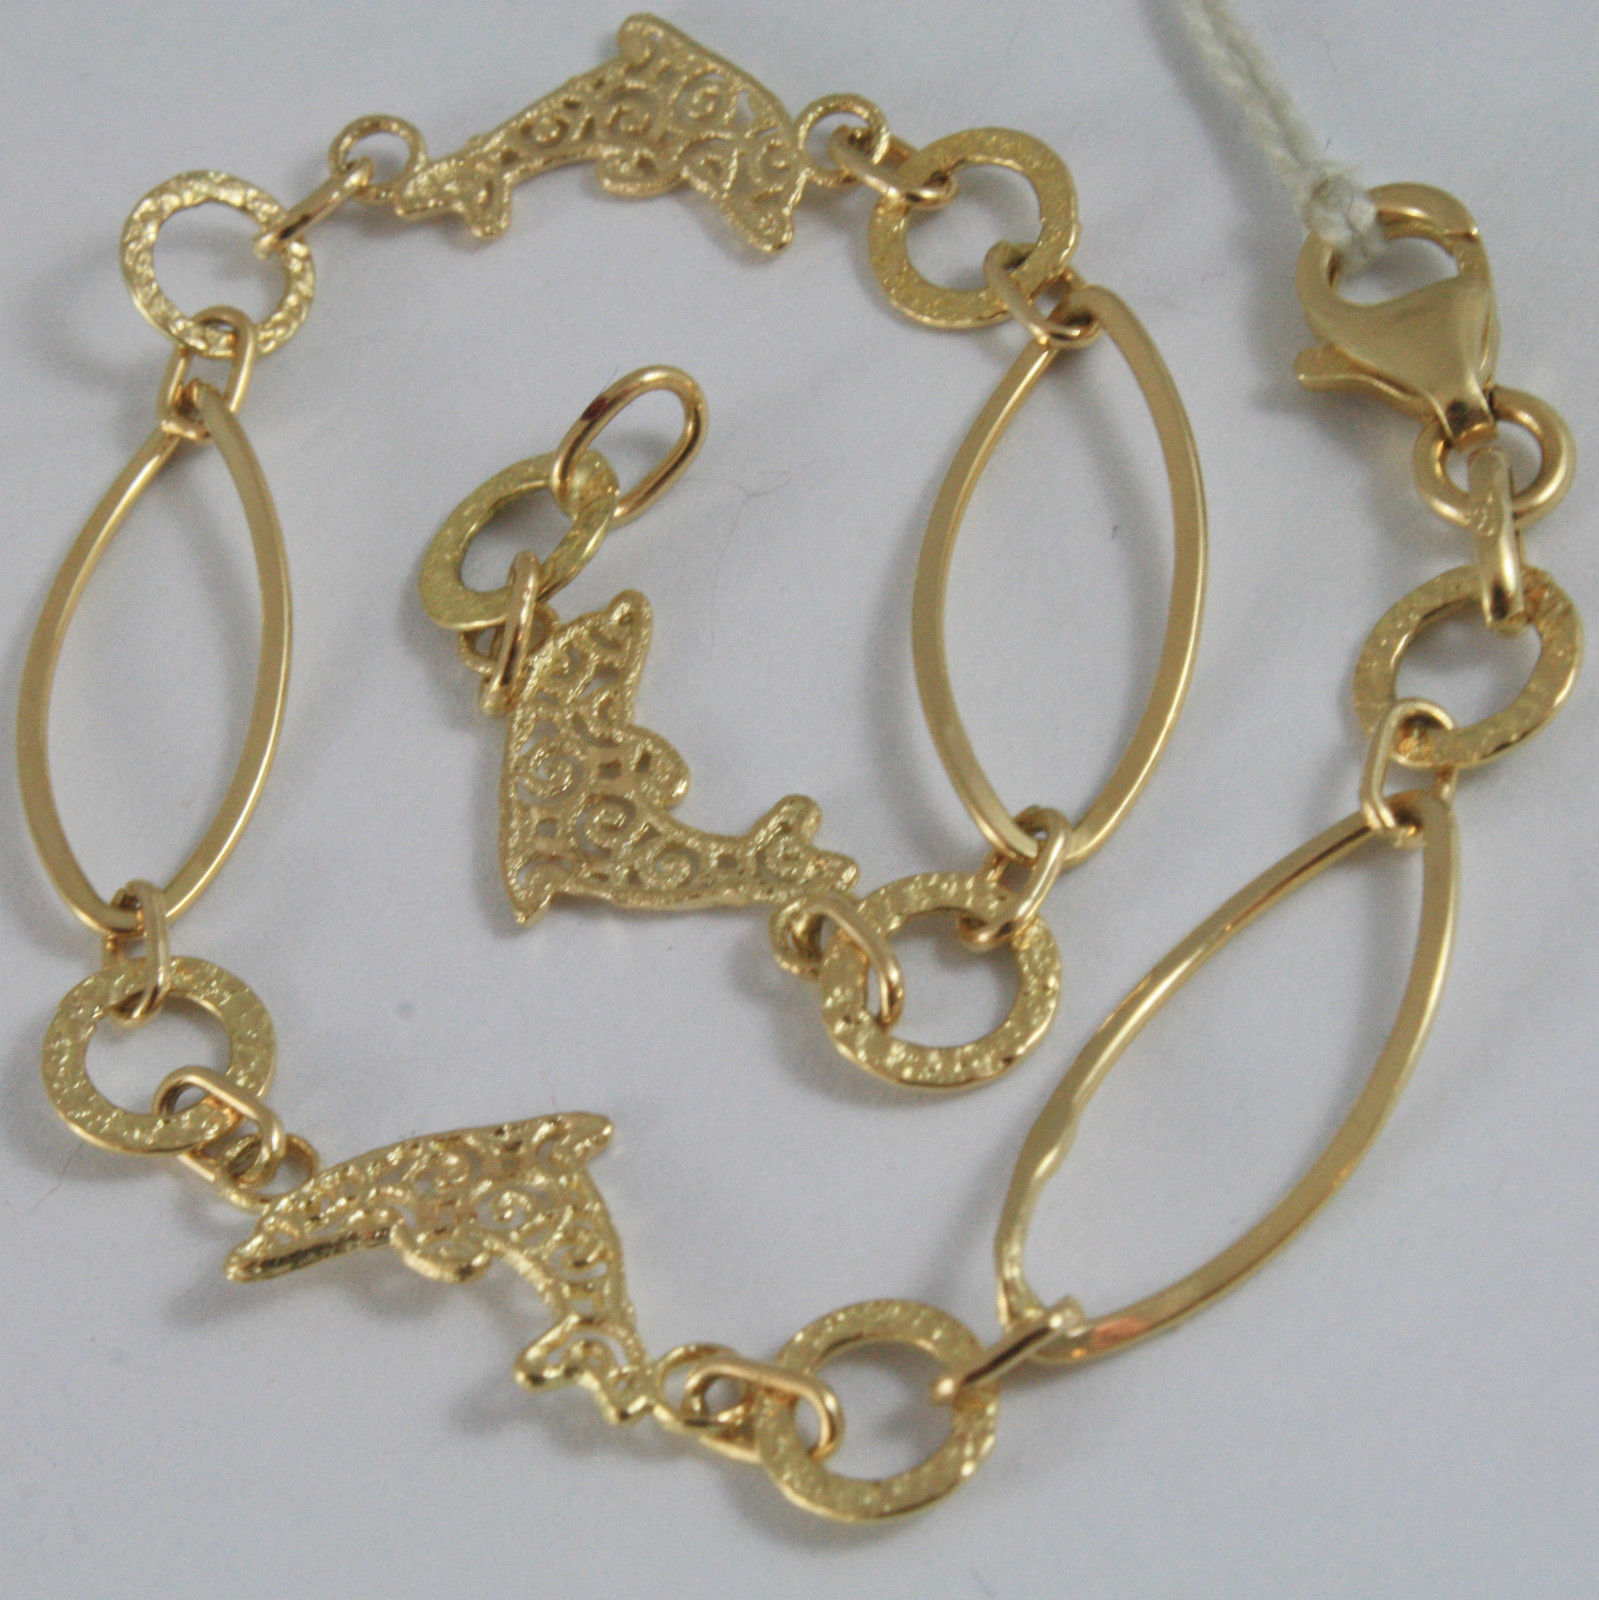 SOLID 18K YELLOW GOLD BRACELET WITH WORKED DOLPHINS AND OVAL MESH, MADE IN ITALY